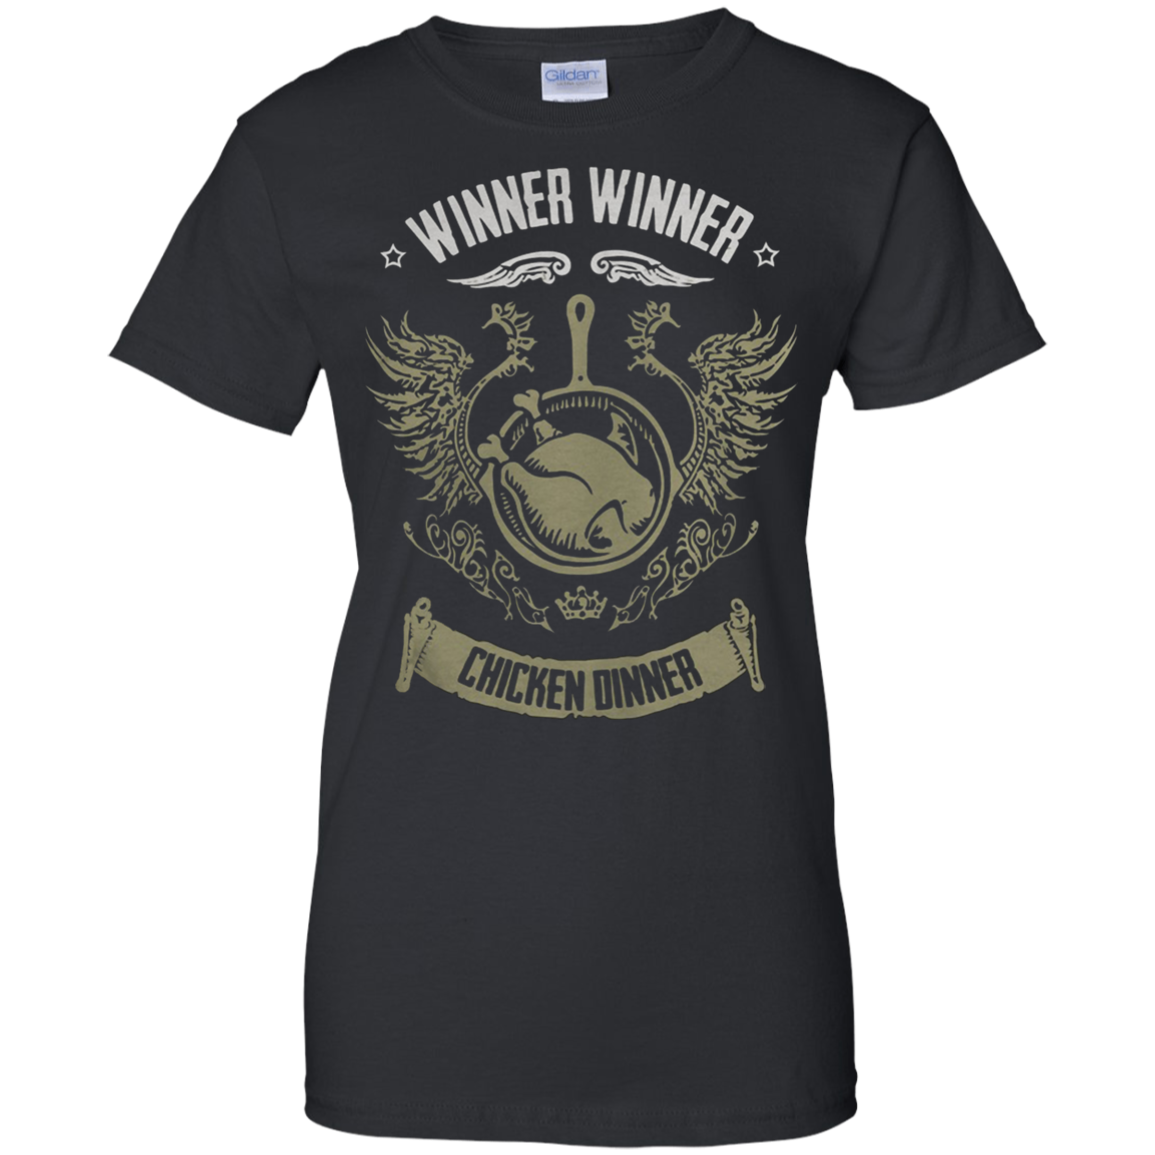 Check Out This Awesome Winner Winner Chicken Dinner Shirt Tula Store